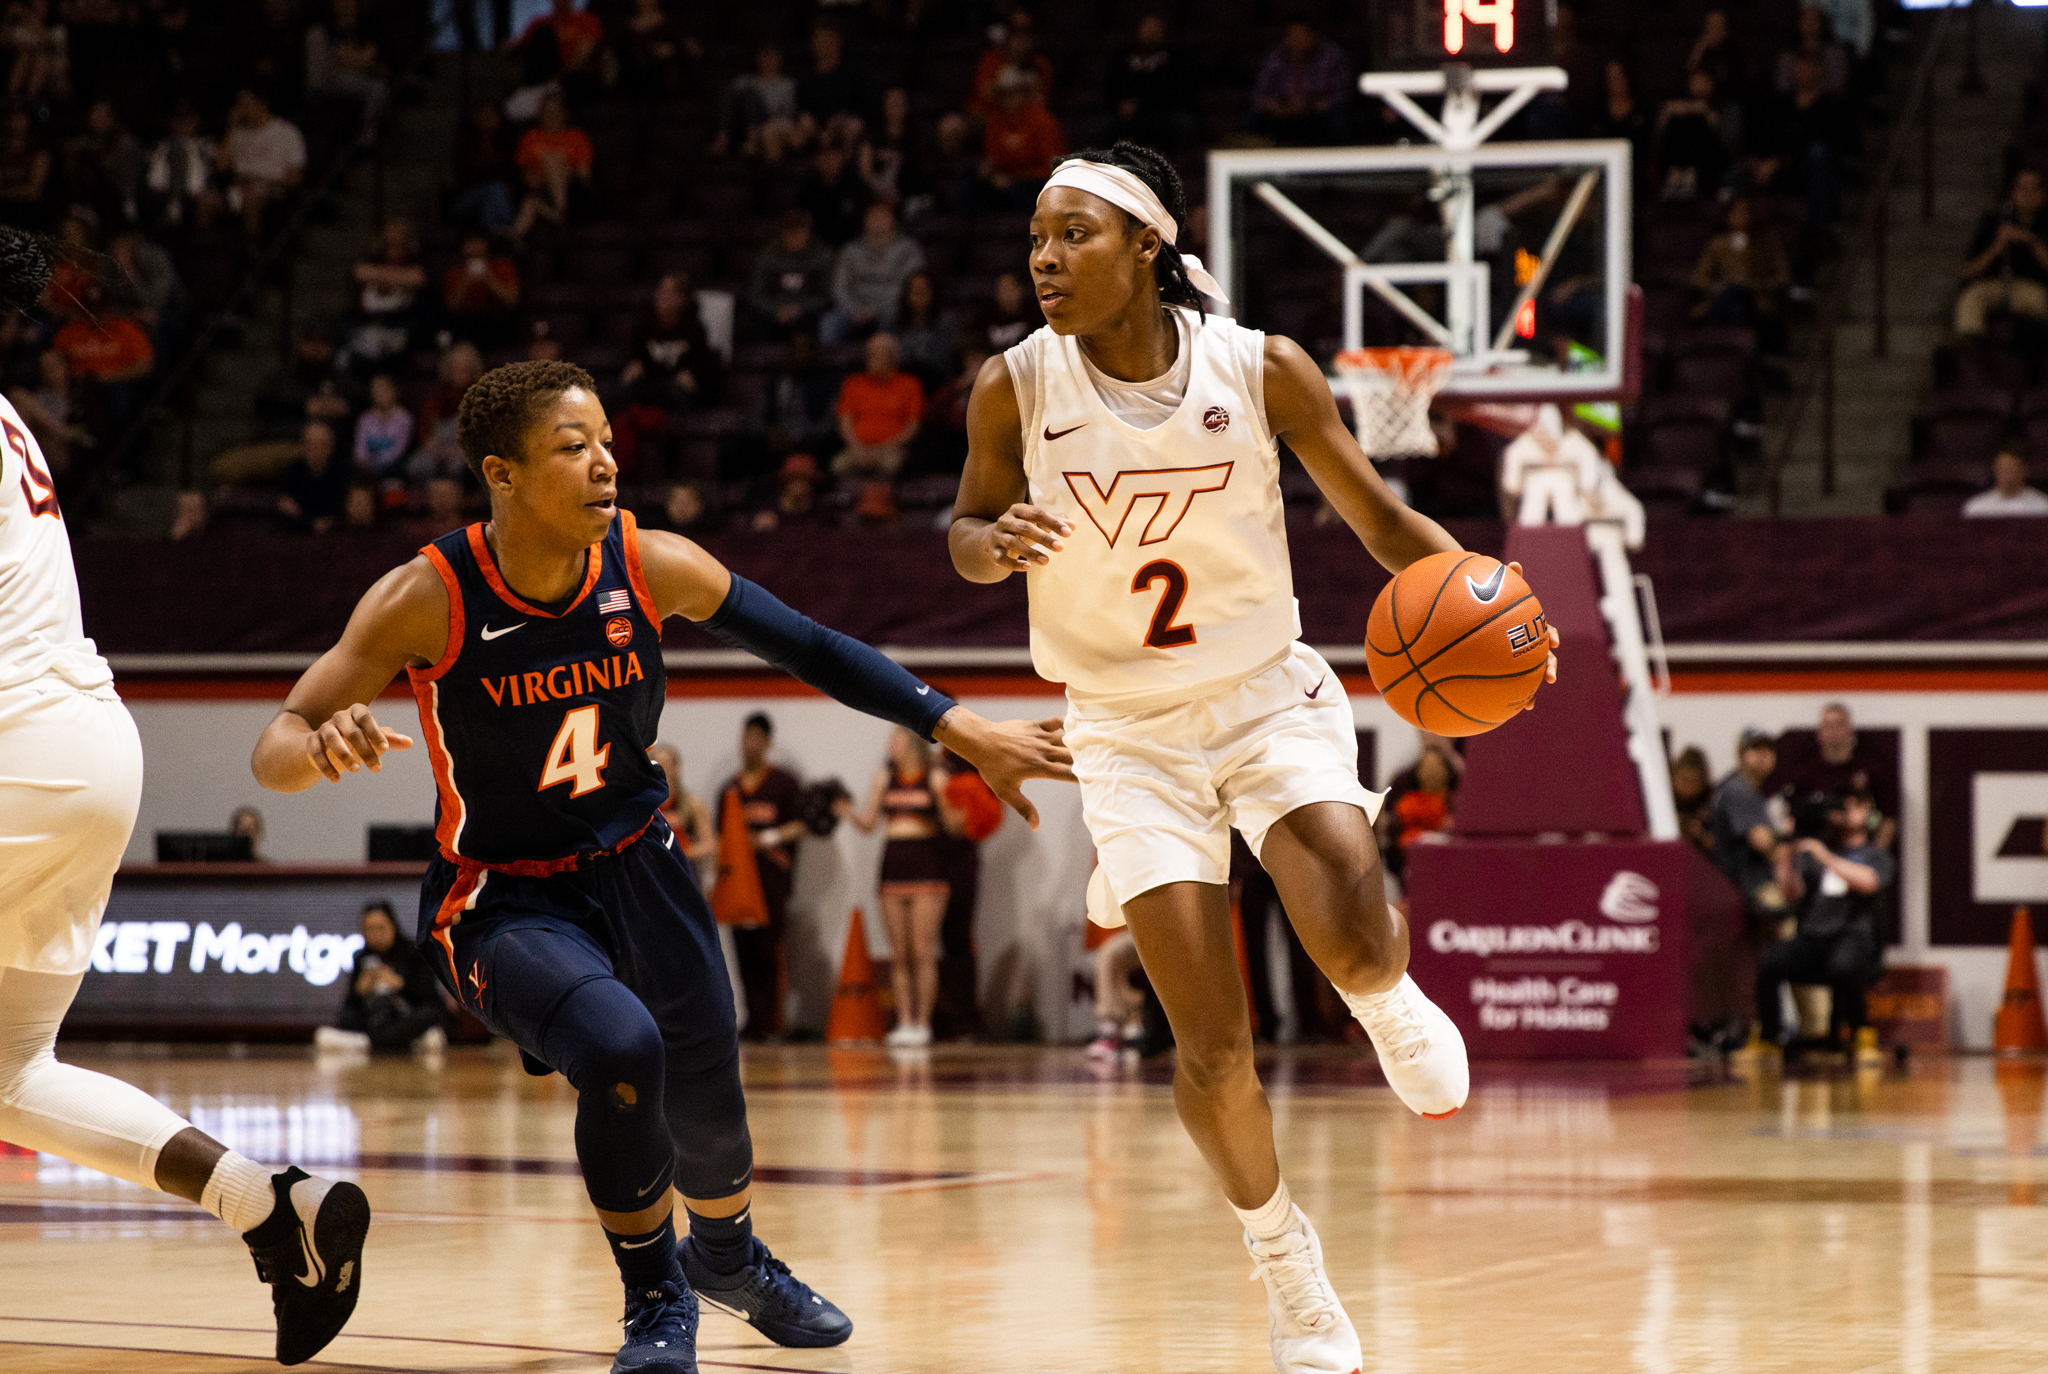 Virginia Tech WBB Upsets #2 N.C. State 83-71